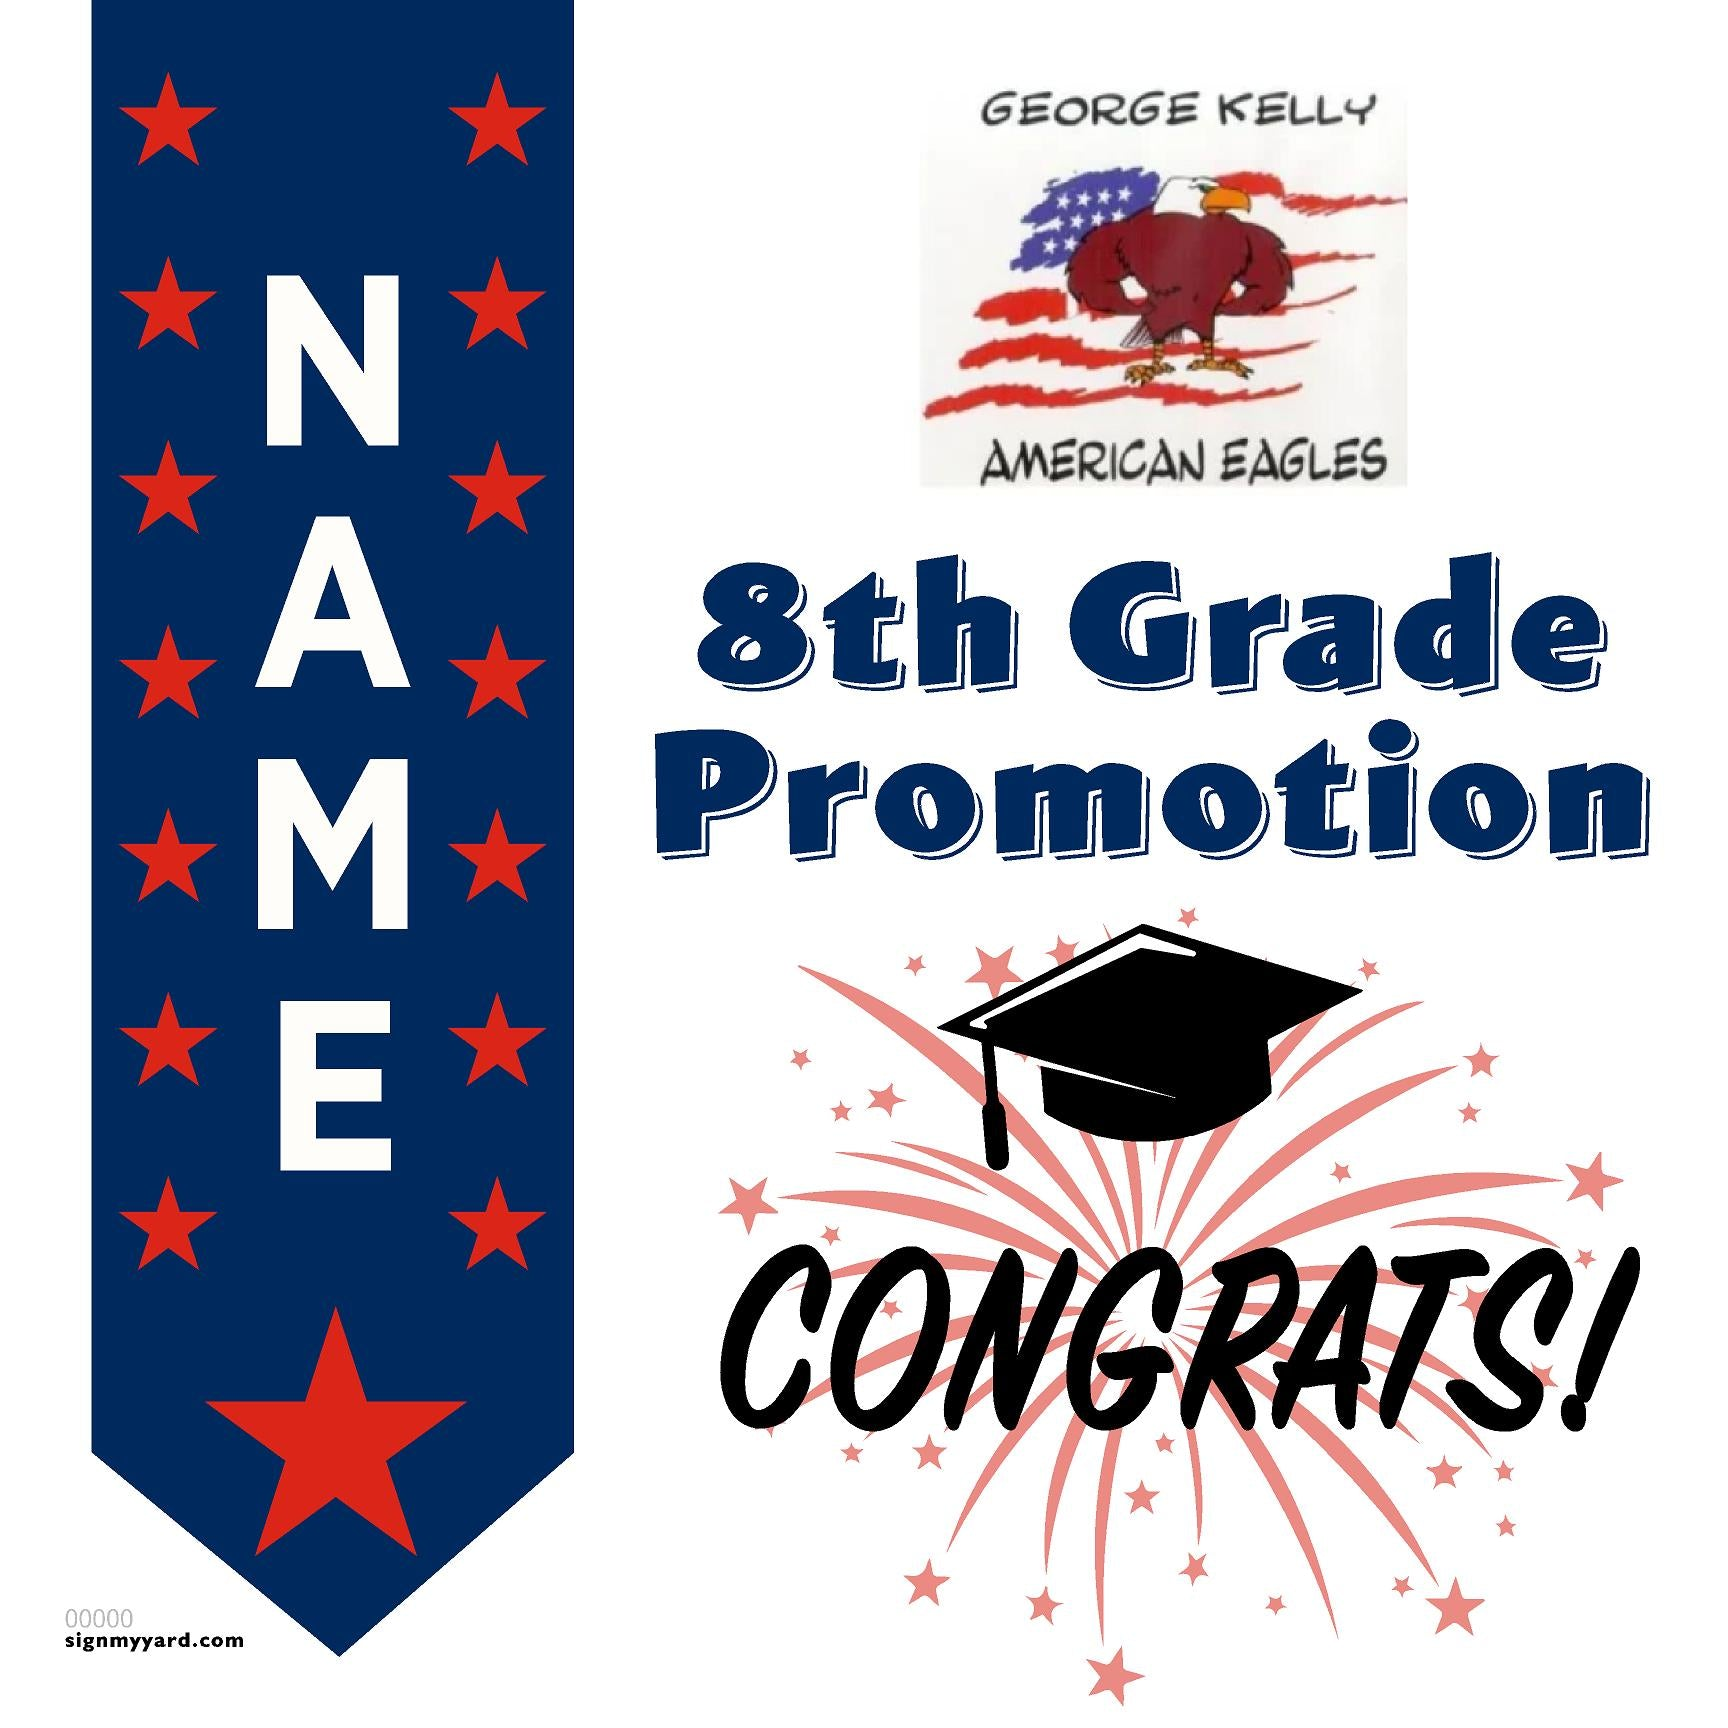 George Kelly Elementary School 8th Grade Promotion 24x24 #shineon2024 Yard Sign (Option B)